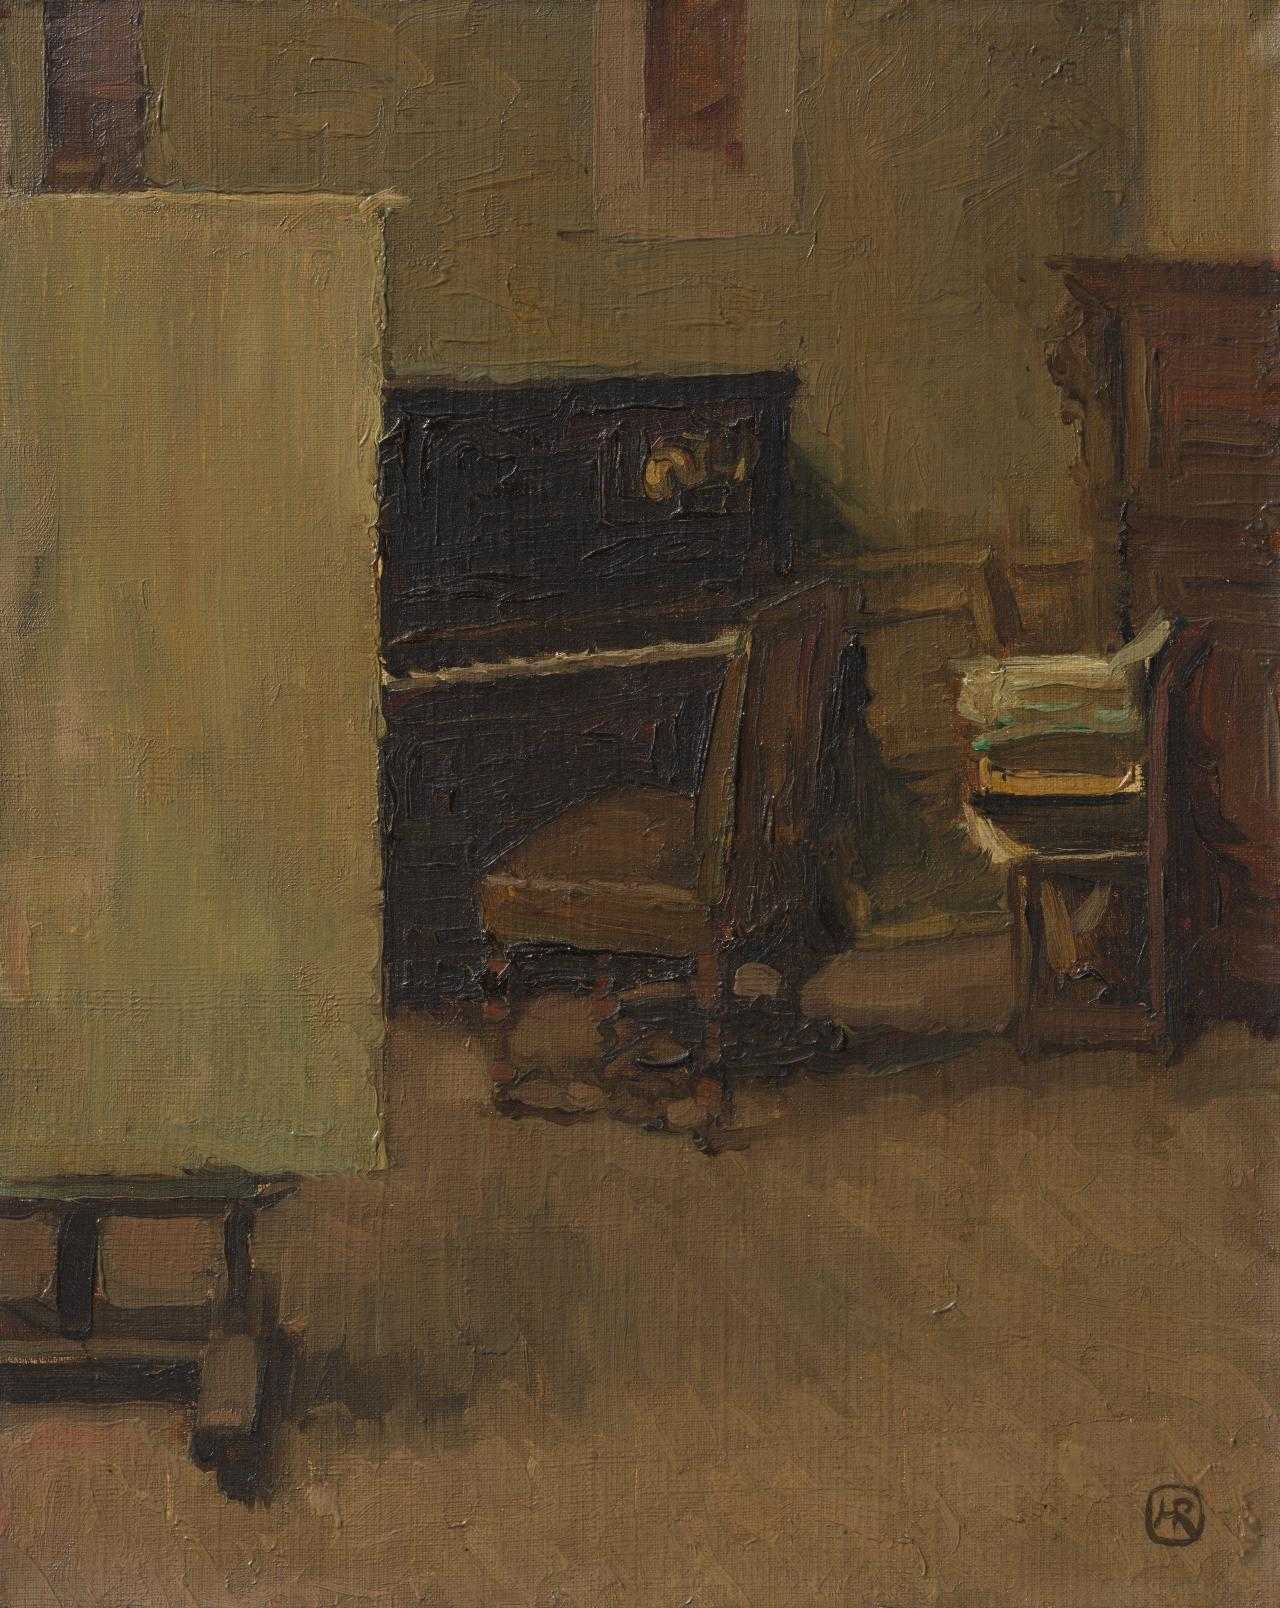 (Interior of artist's studio)